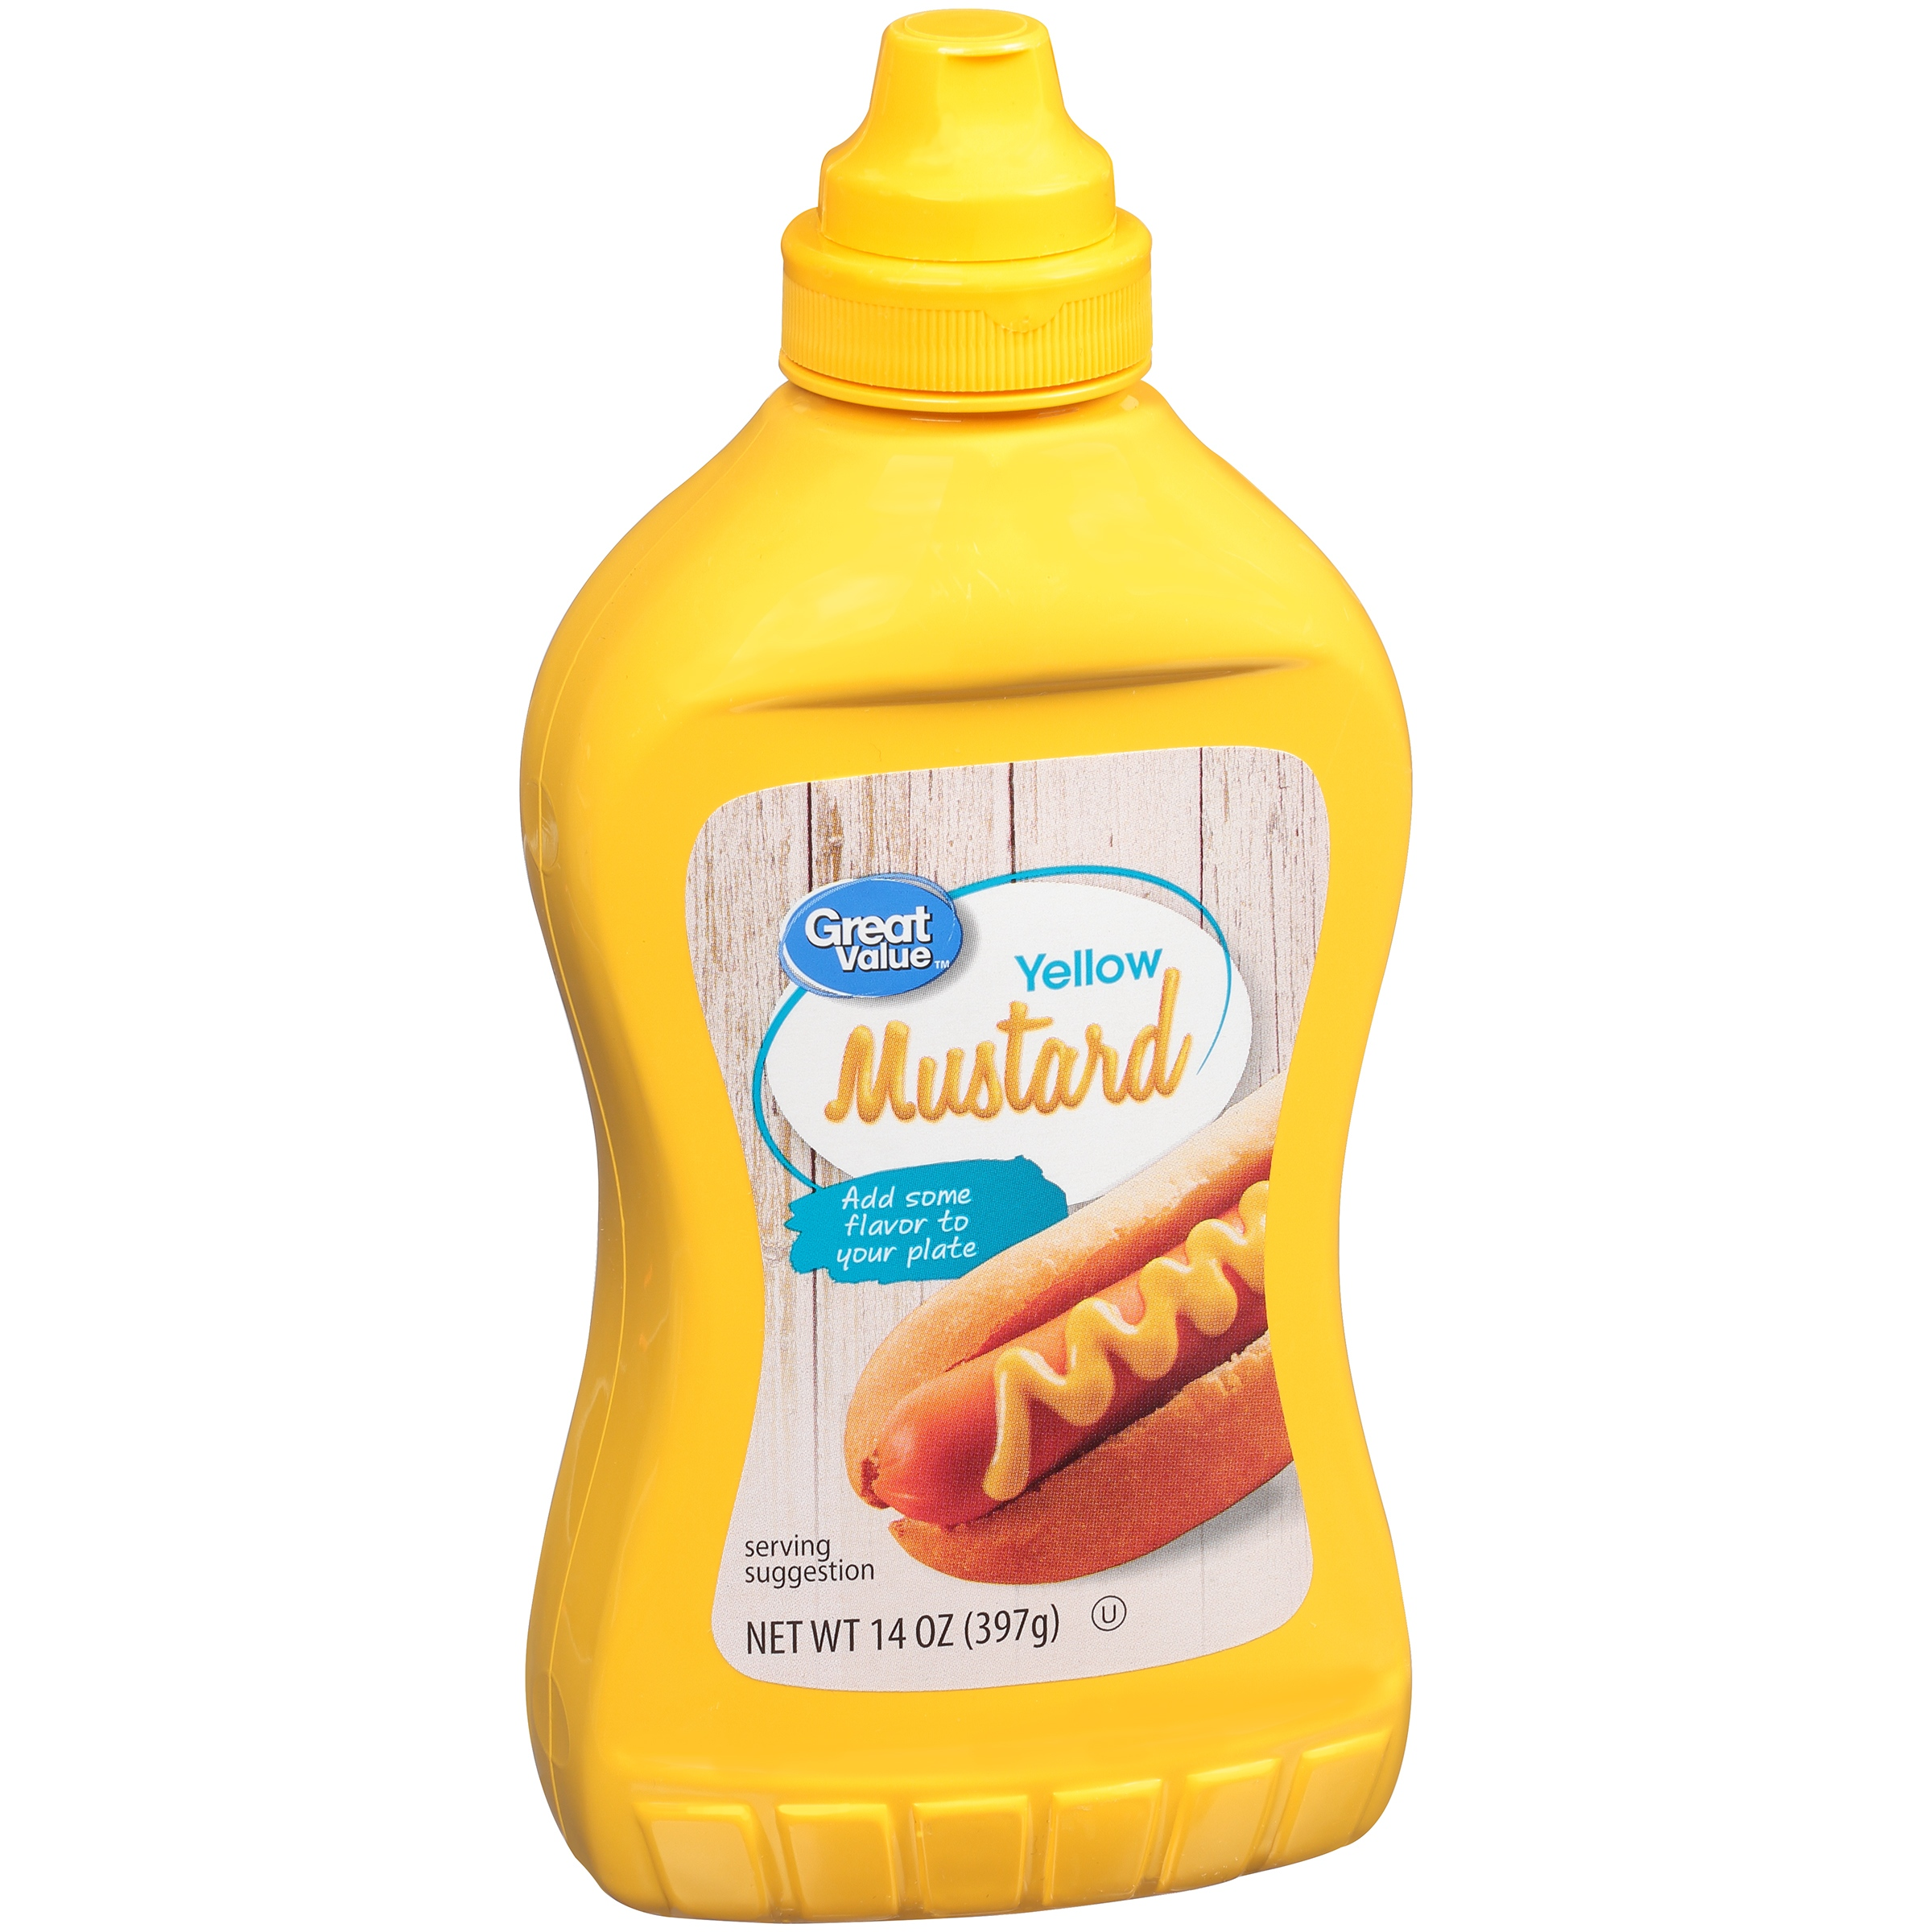 Great Value Yellow Mustard, 14 oz